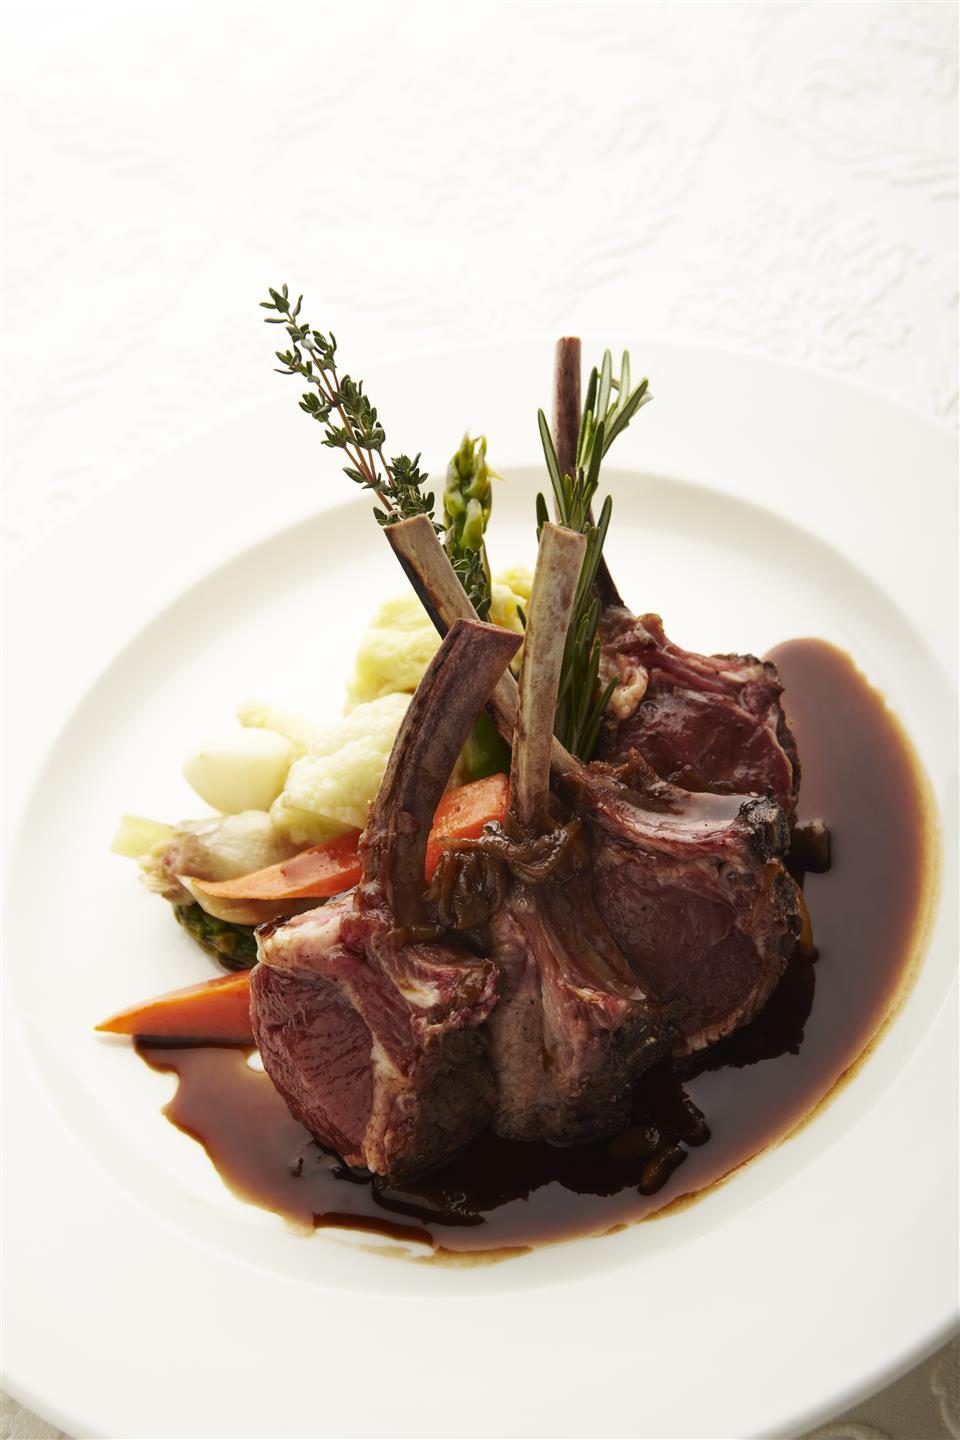 lamb chops topped with sauce and garnish